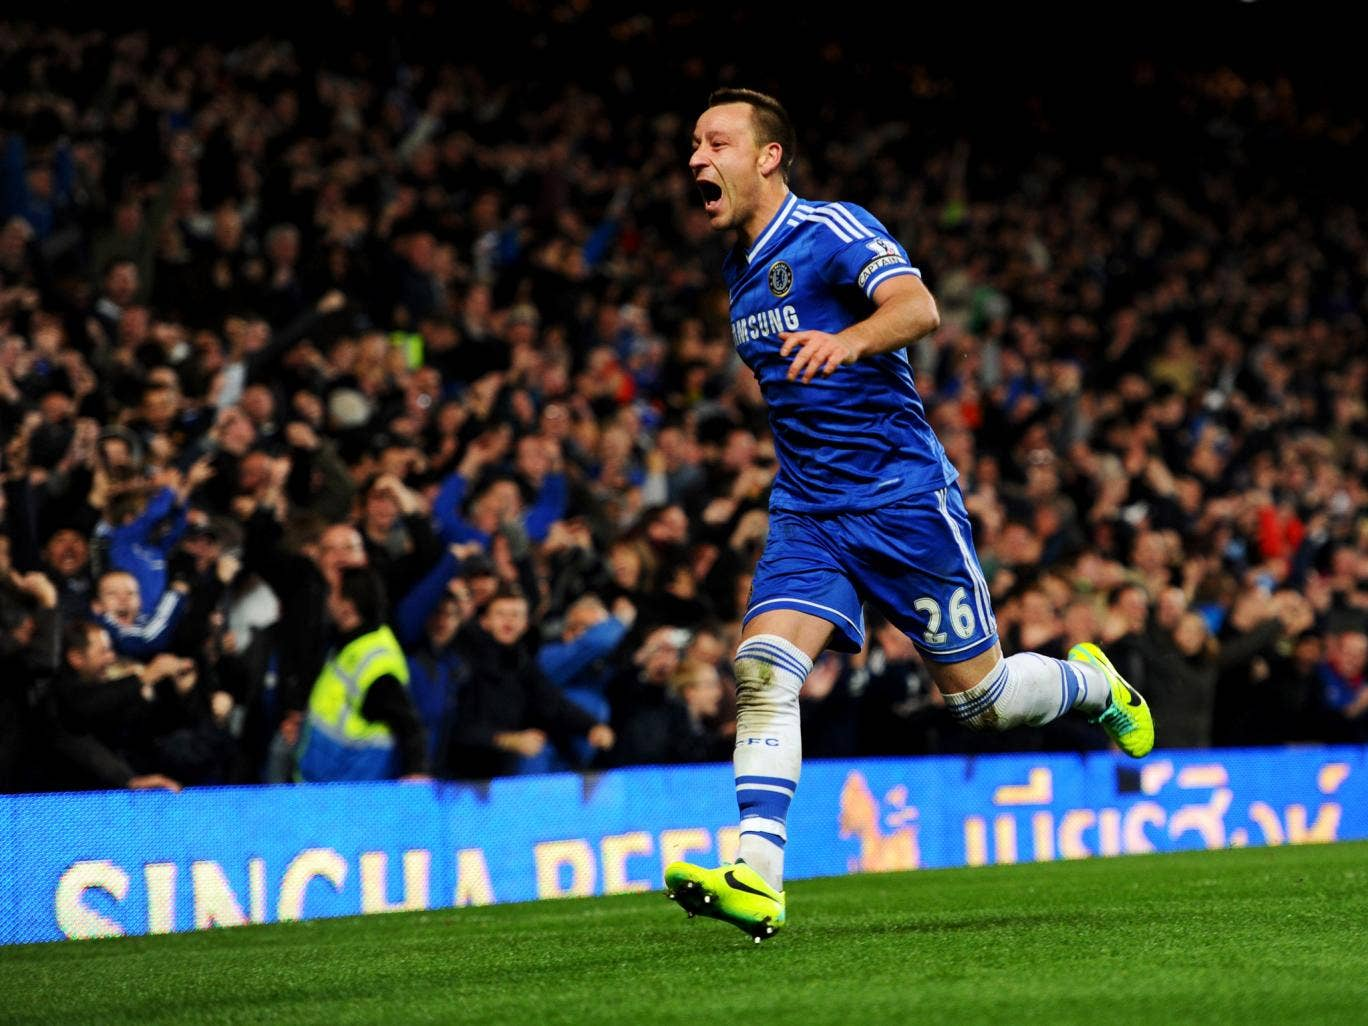 Chelsea captain John Terry has warned their Premier League rivals that they're getting better and better